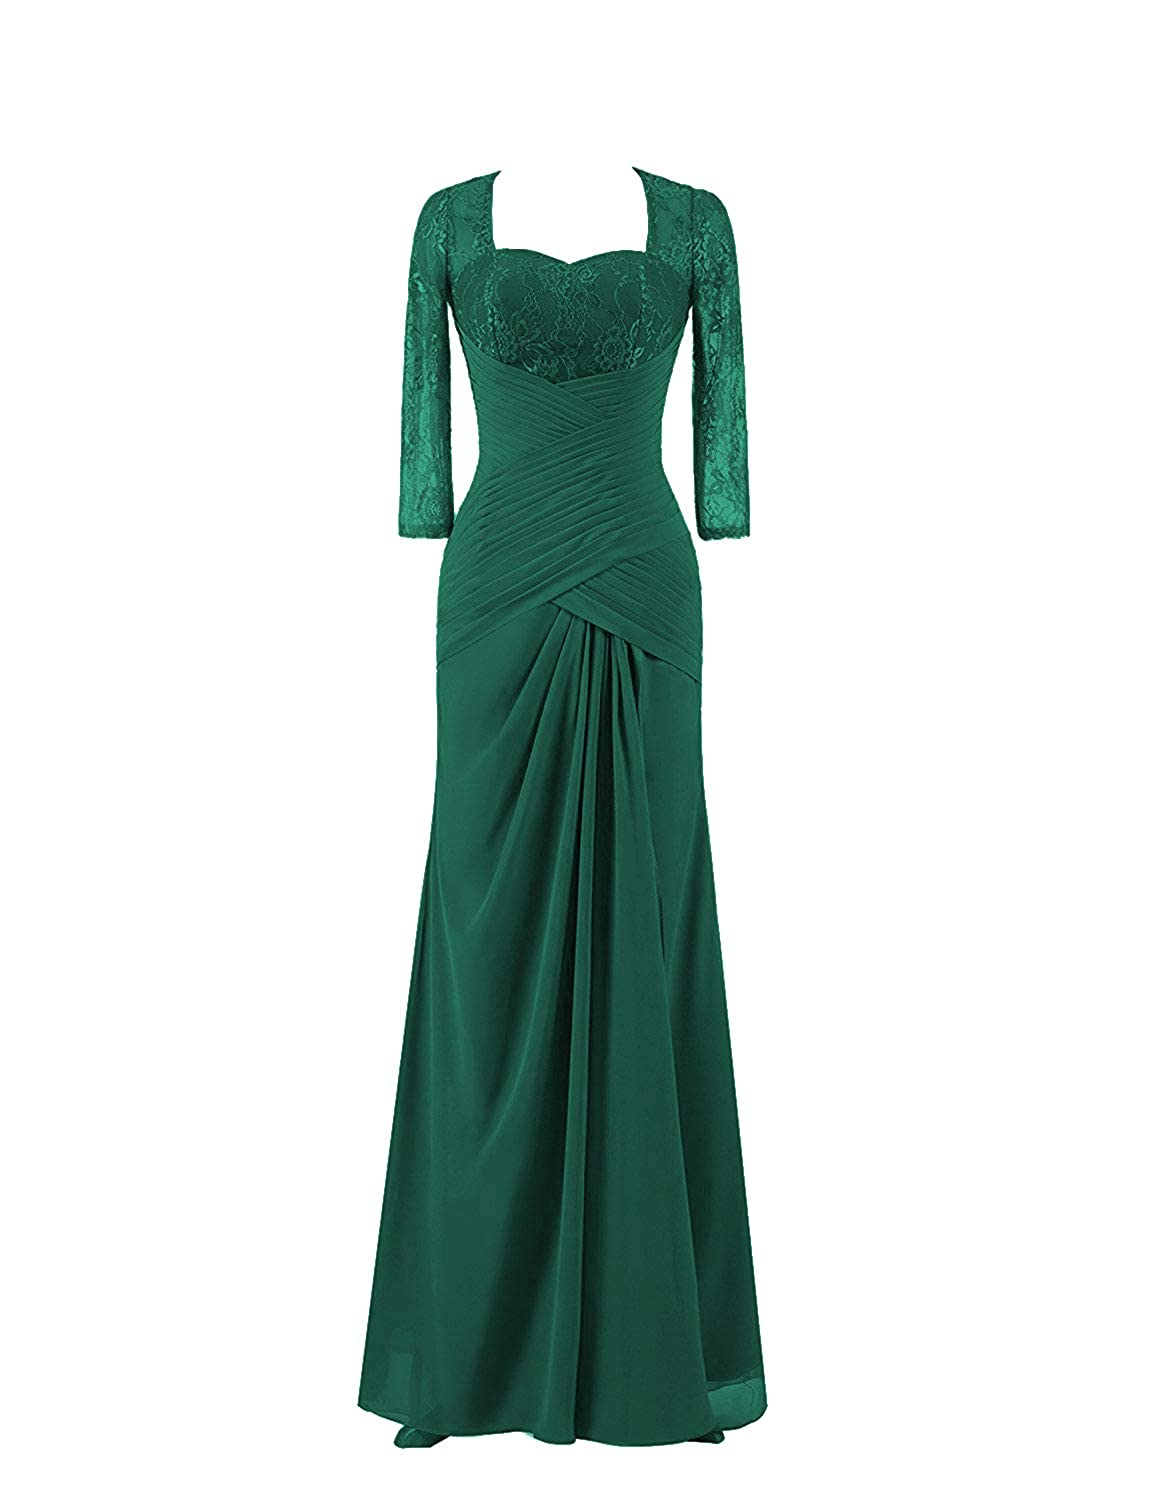 Dark Green Mother of The Bride Dresses with Long Sleeves Plus Size Evening Gown Lace Mothers Dress Formal Gowns